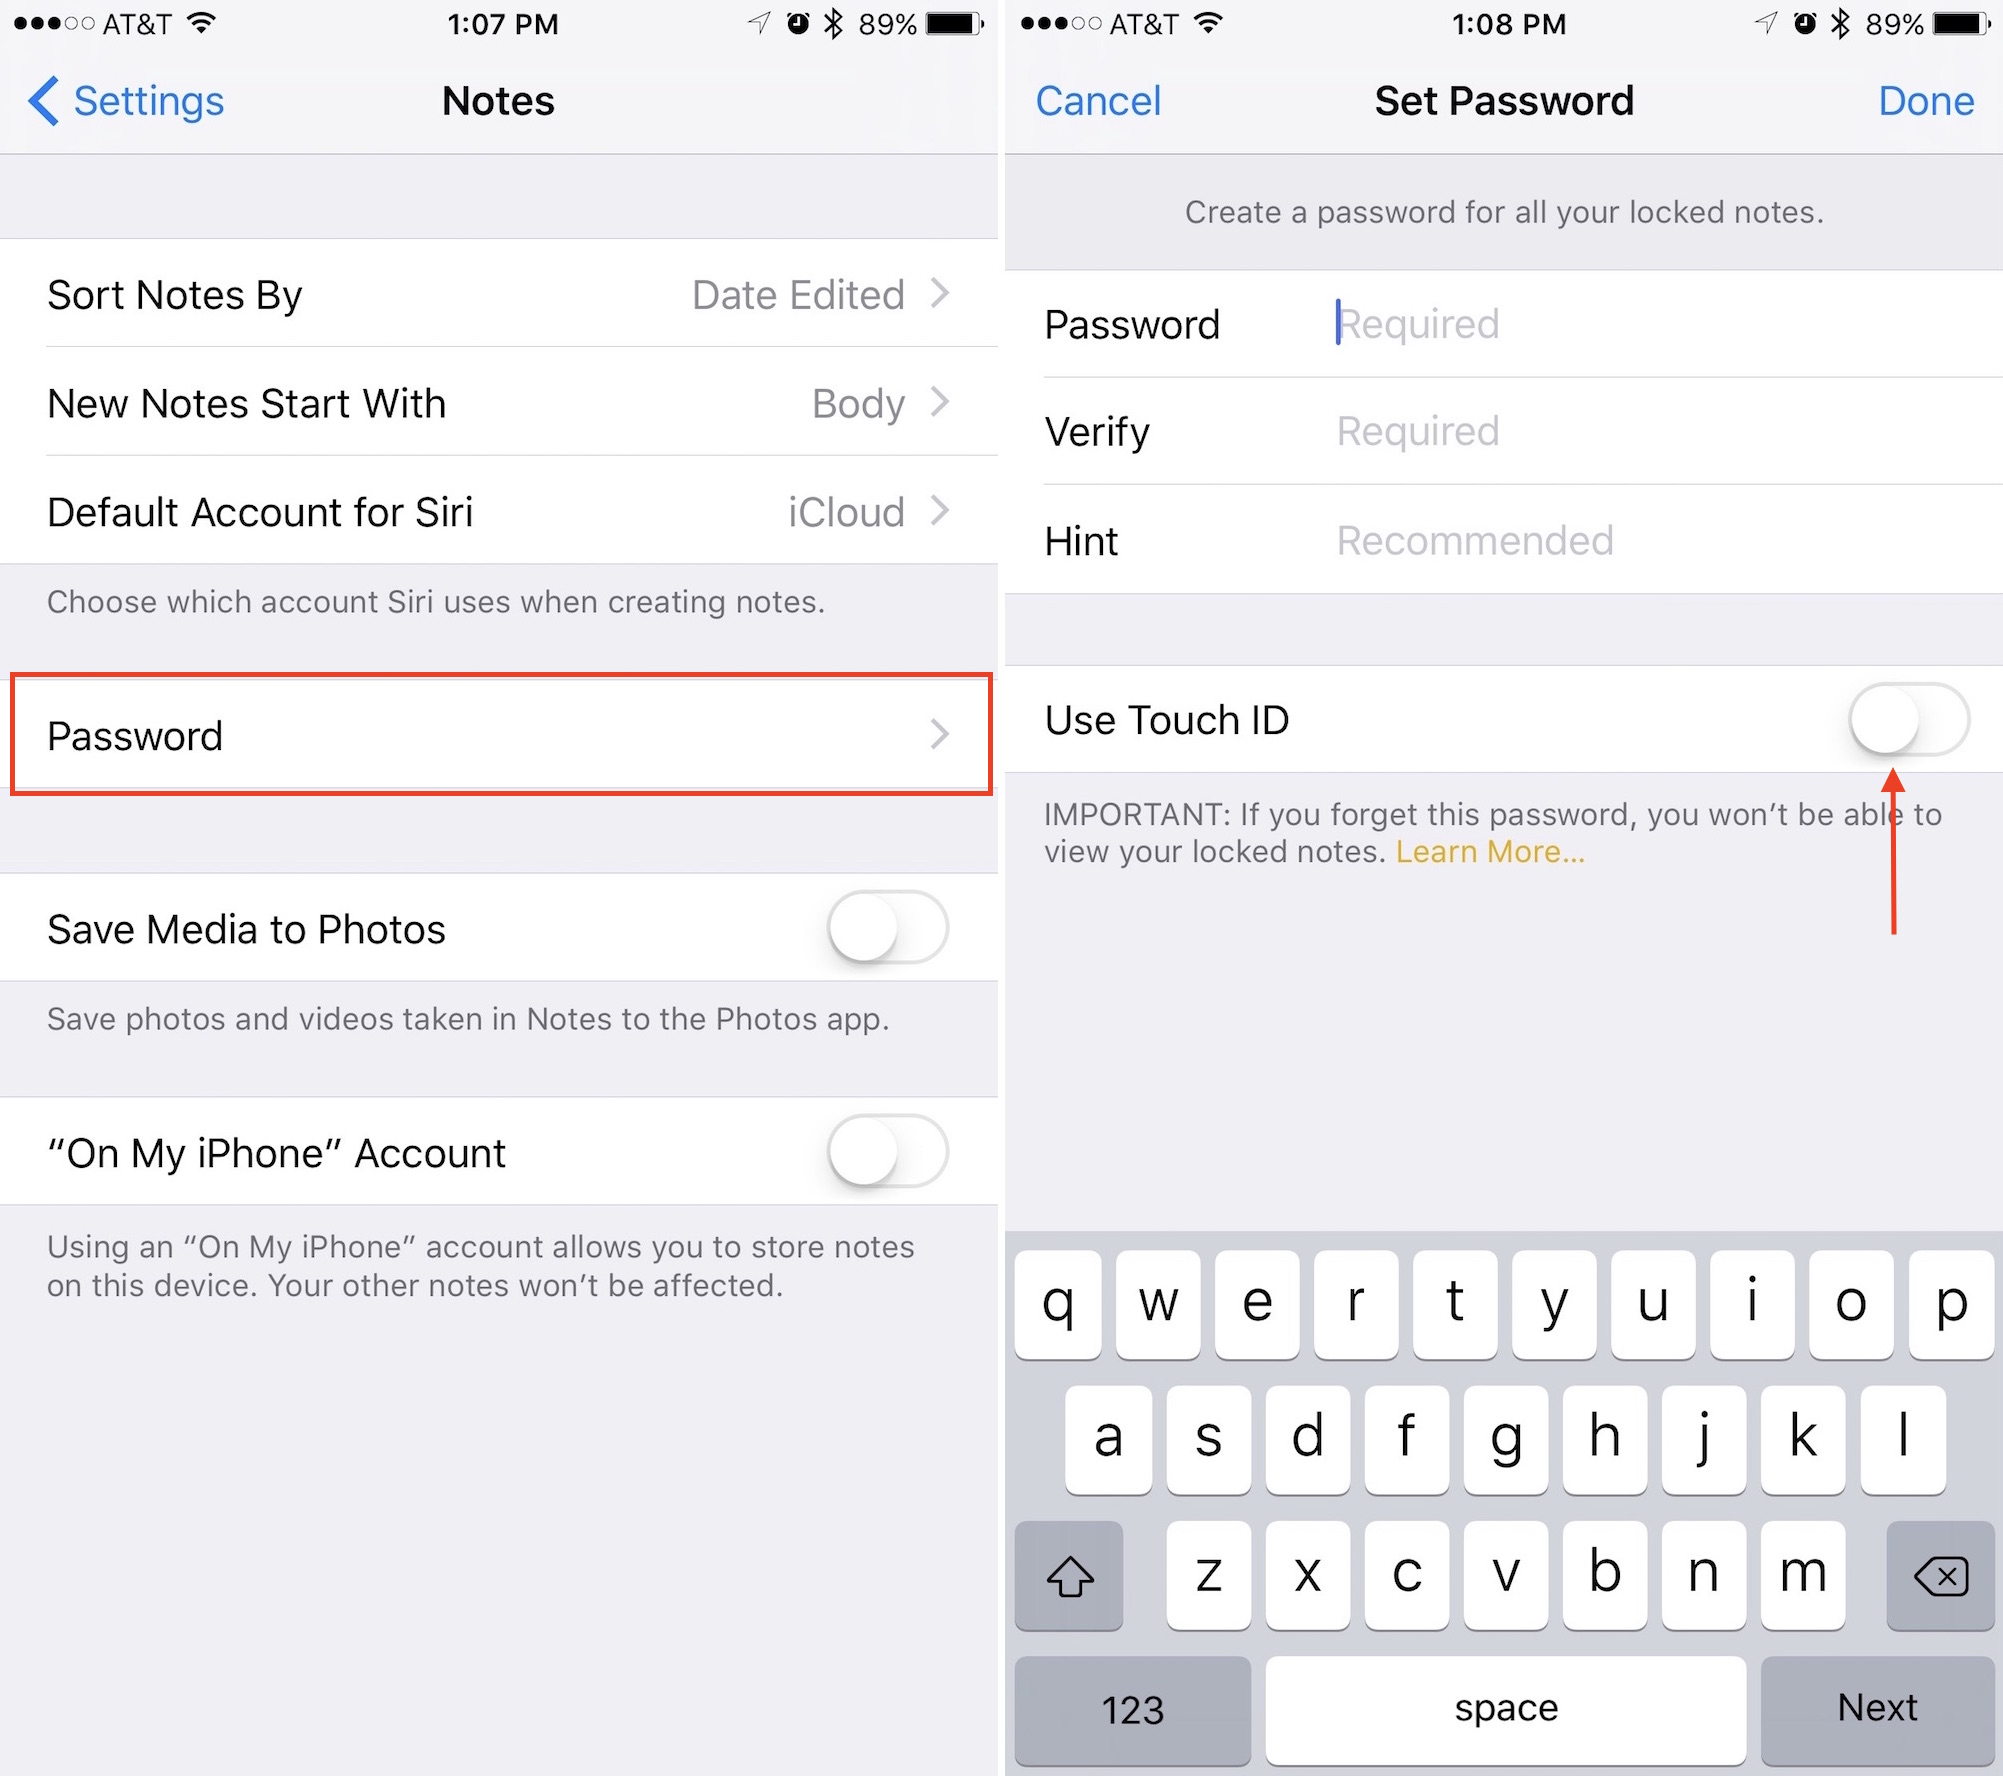 How to Password Protect Notes in iOS 9.3 and OS X 10.11.4 - MacRumors